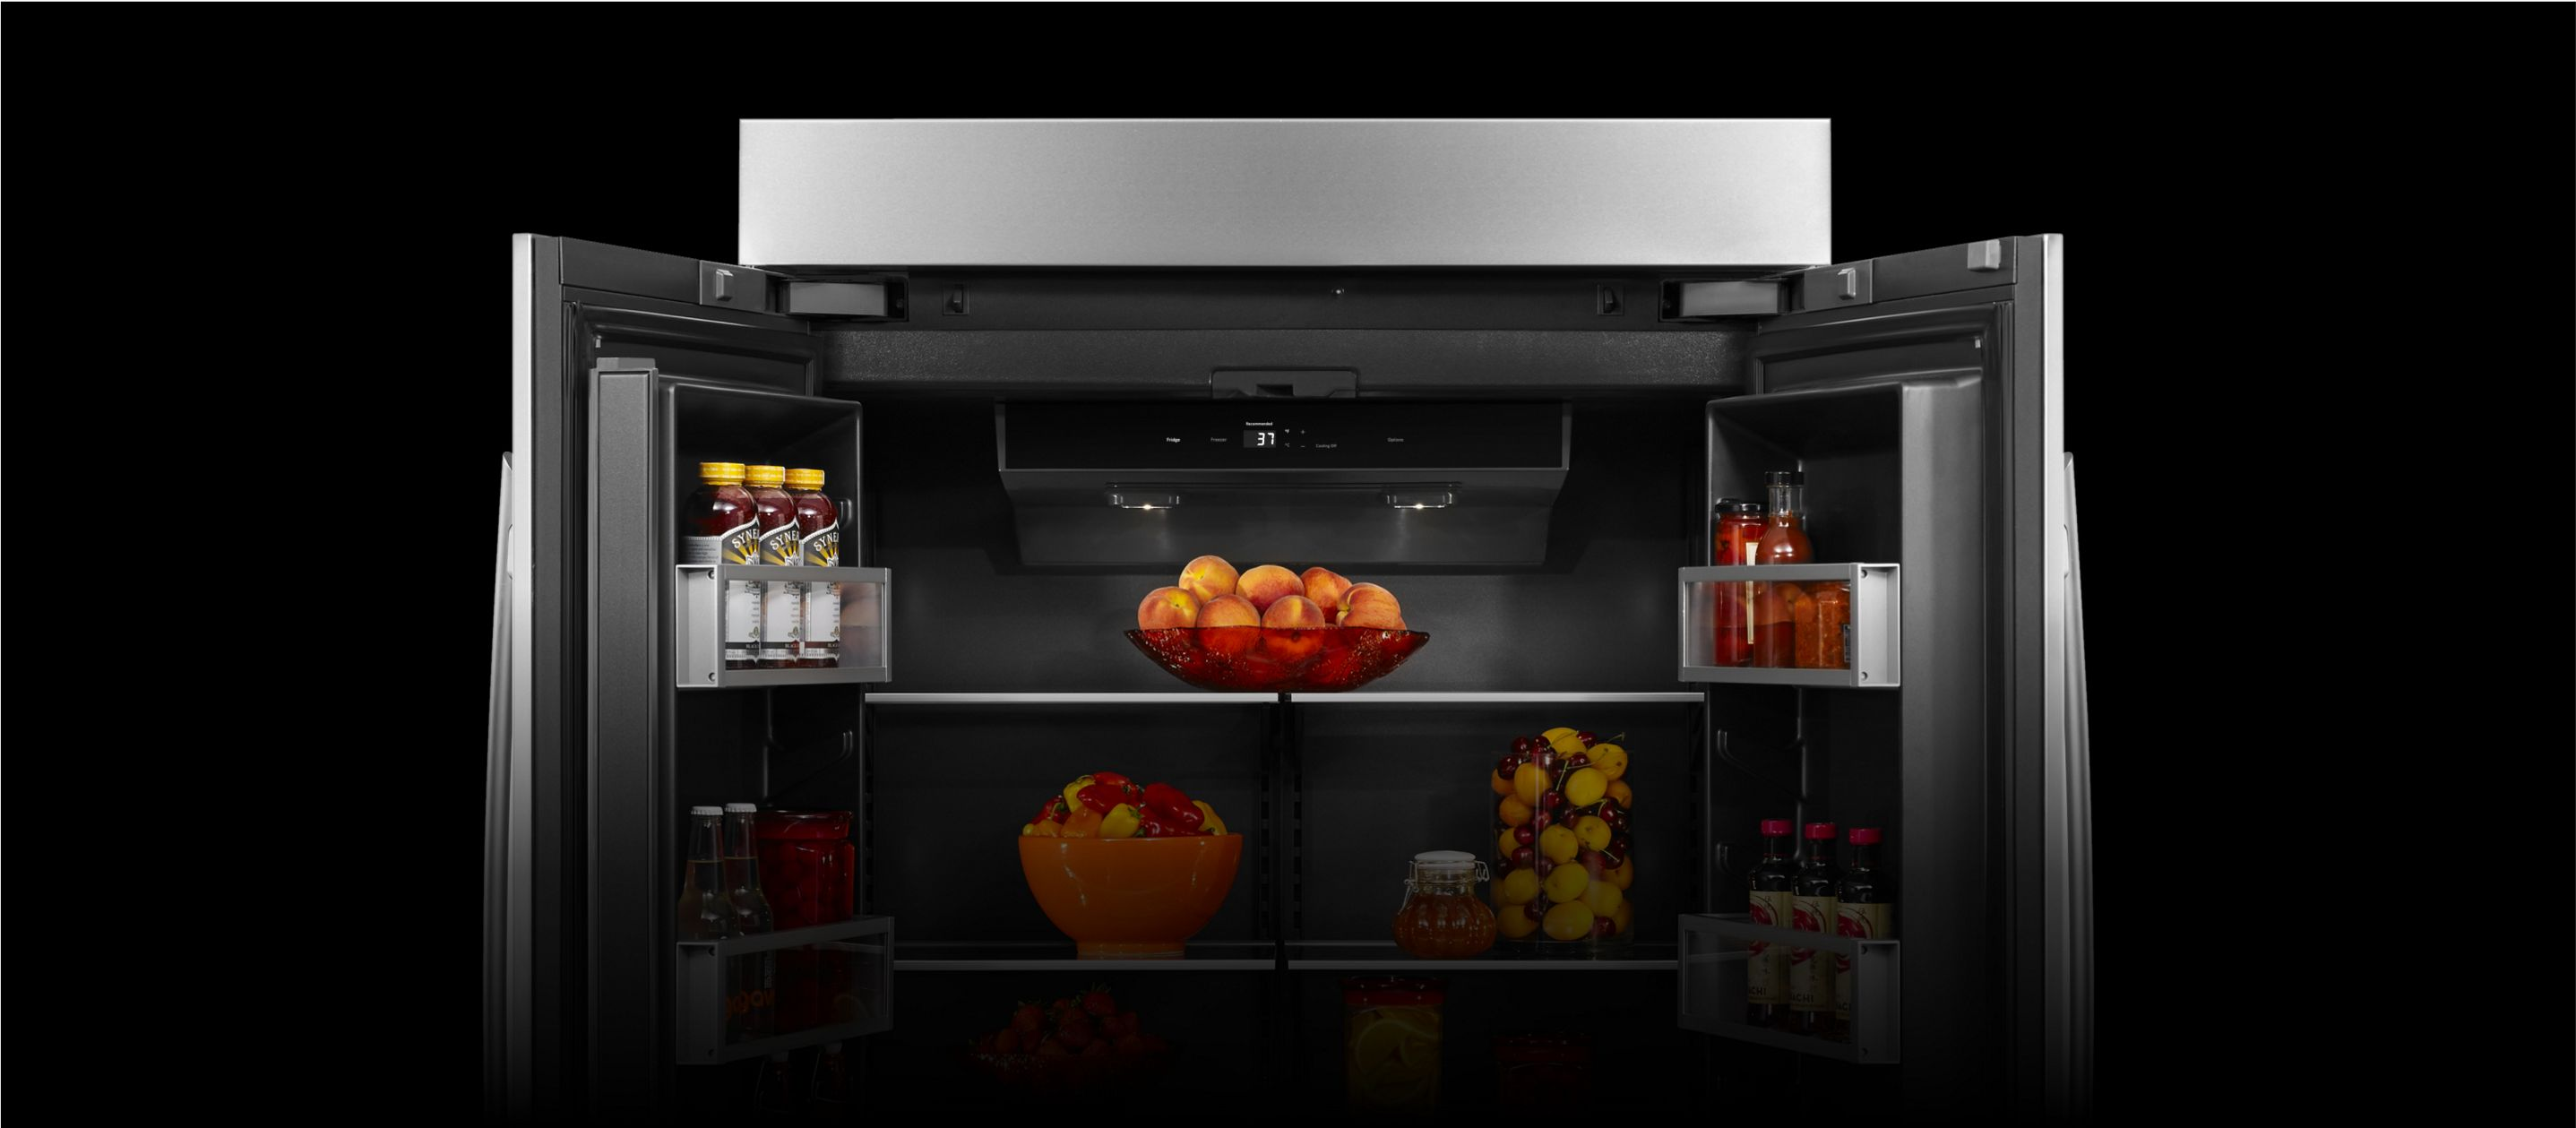 An open JennAir[®] high-end built-in refrigerator filled with vibrant orange fruit.